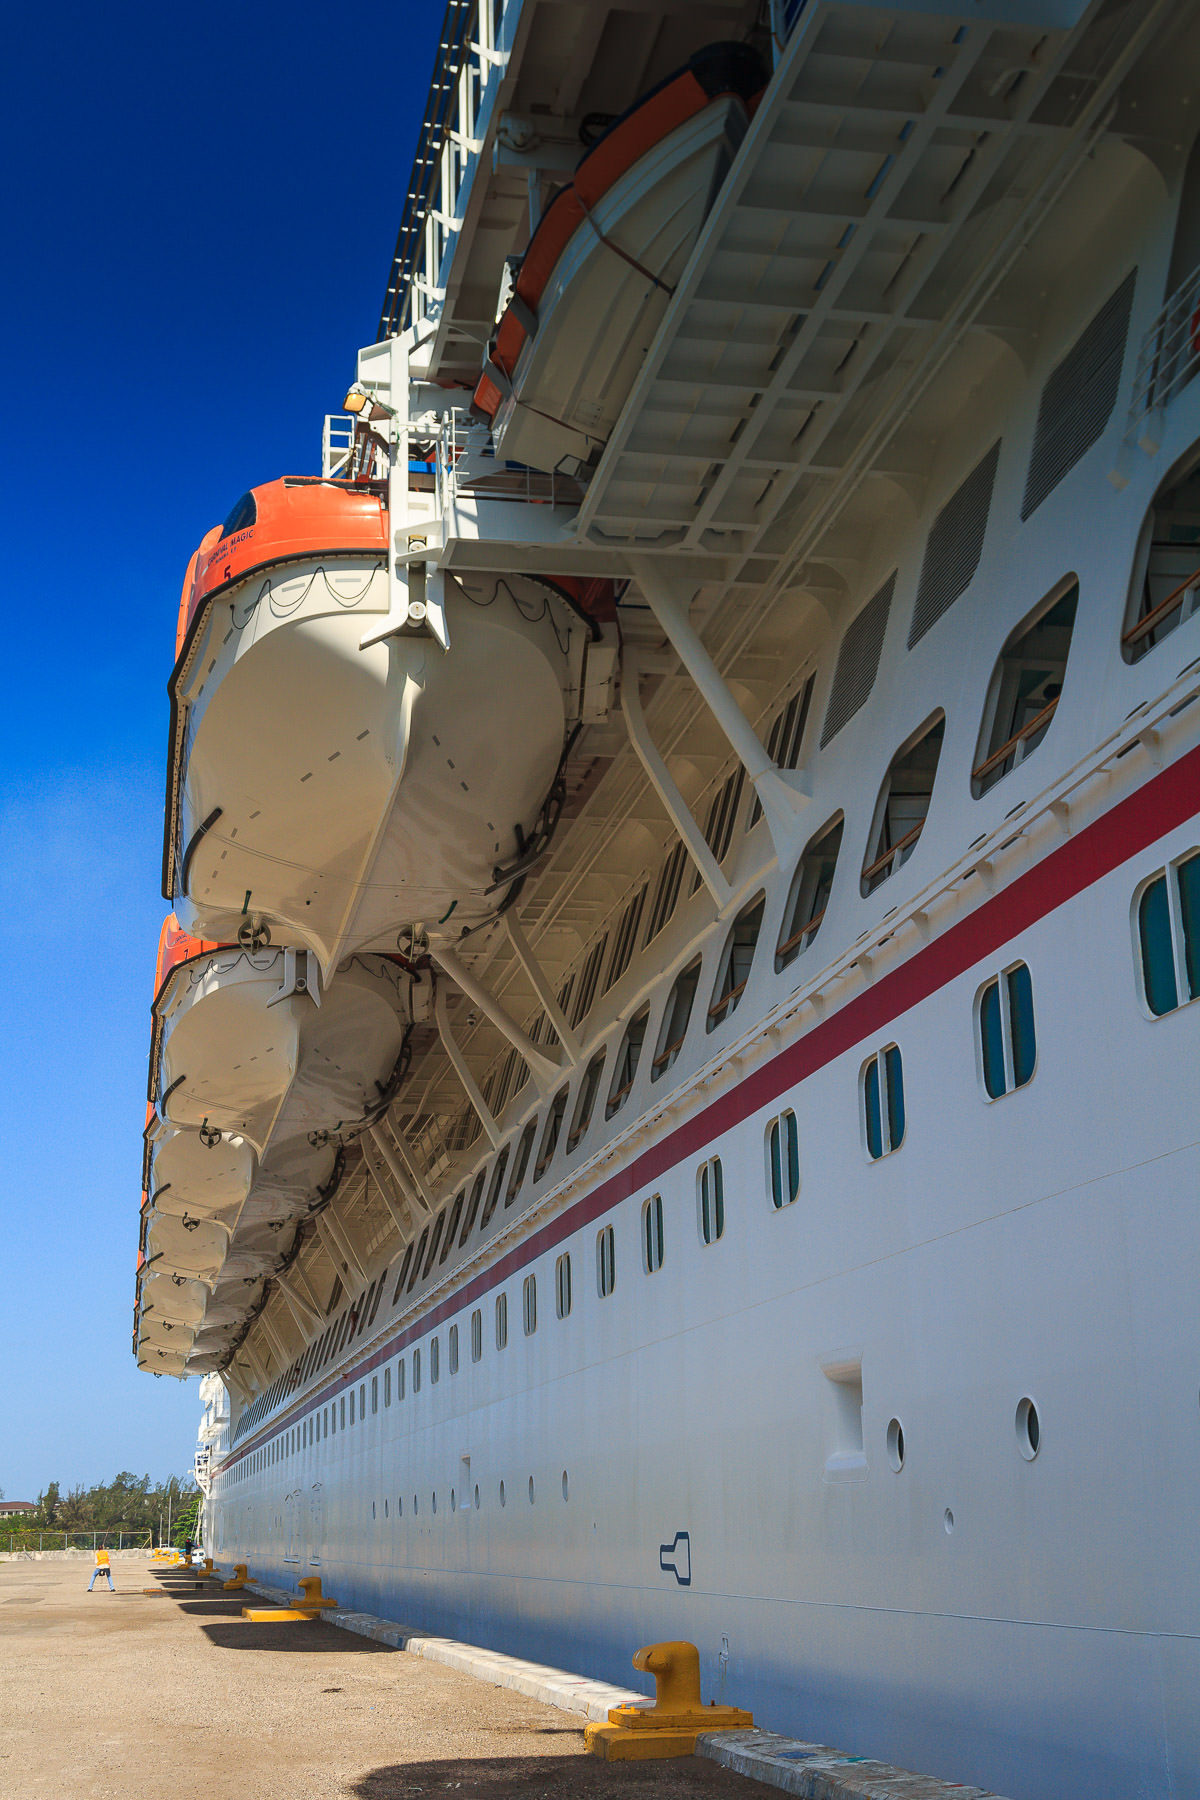 The starboard lifeboats of the cruise ship Carnival Magic while docked at Montego Bay, Jamaica.